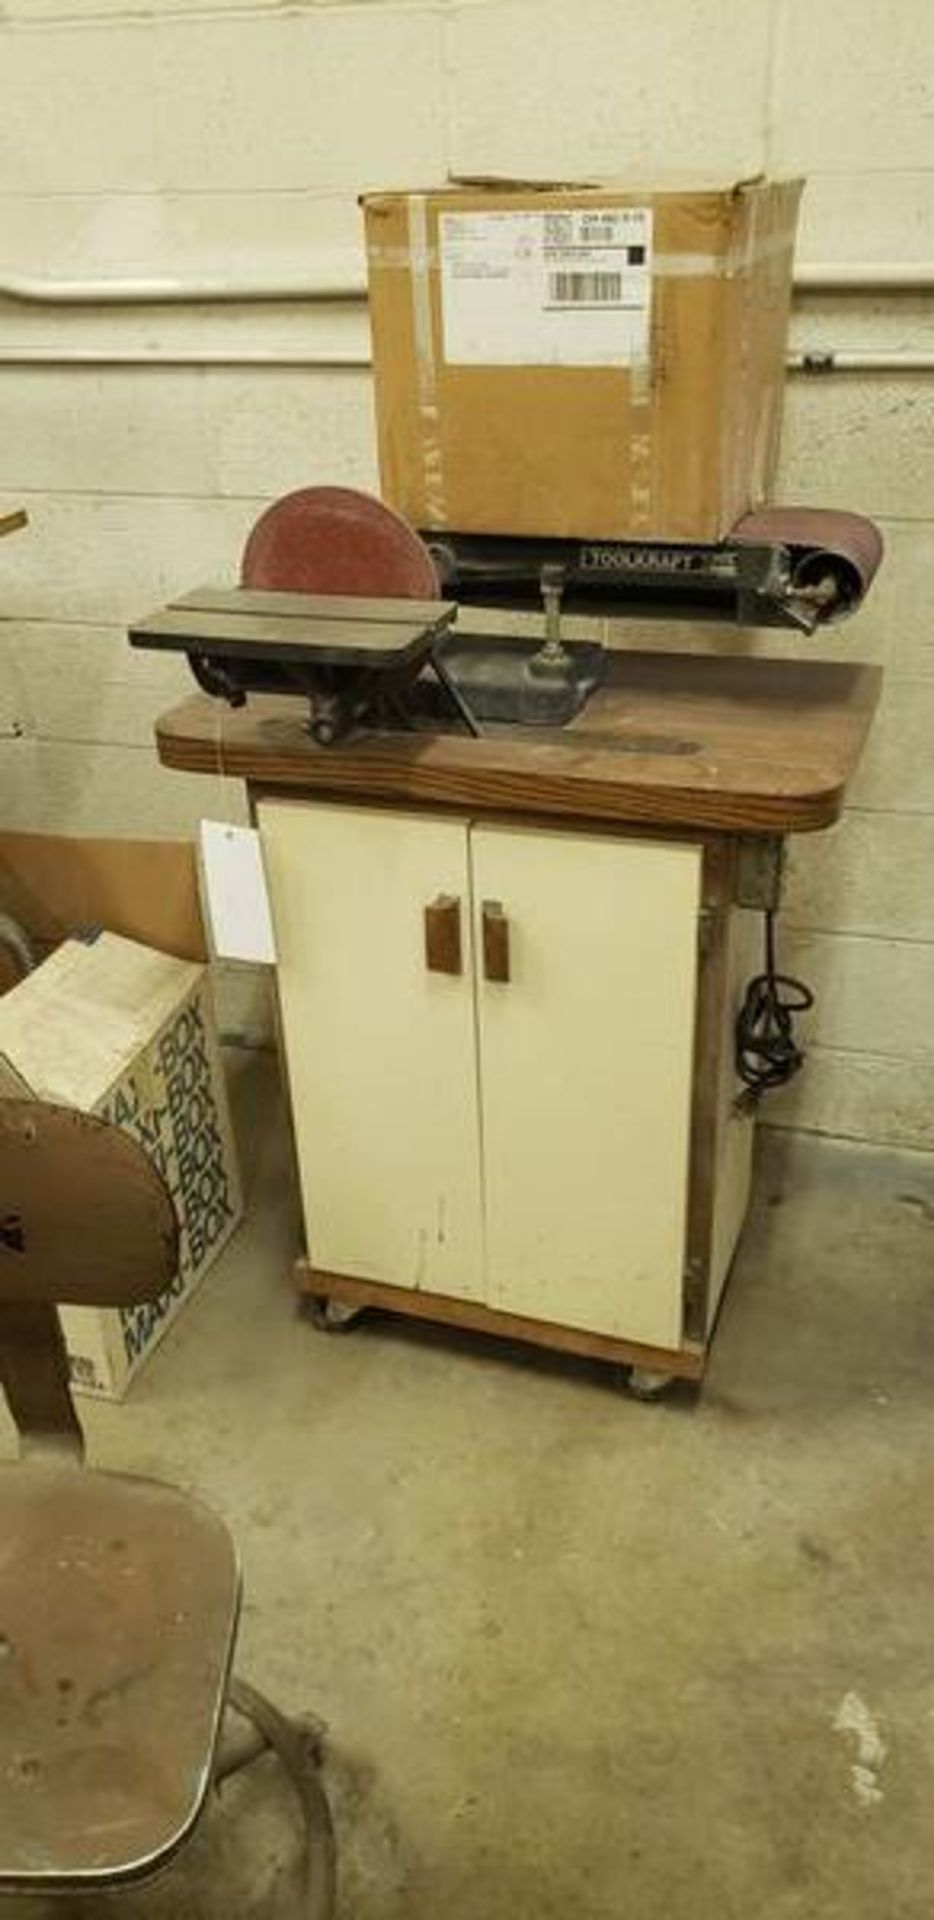 TOOL CRAFT BELT AND DISC SANDER - MODEL 4340 - WITH EXTRA BELTS